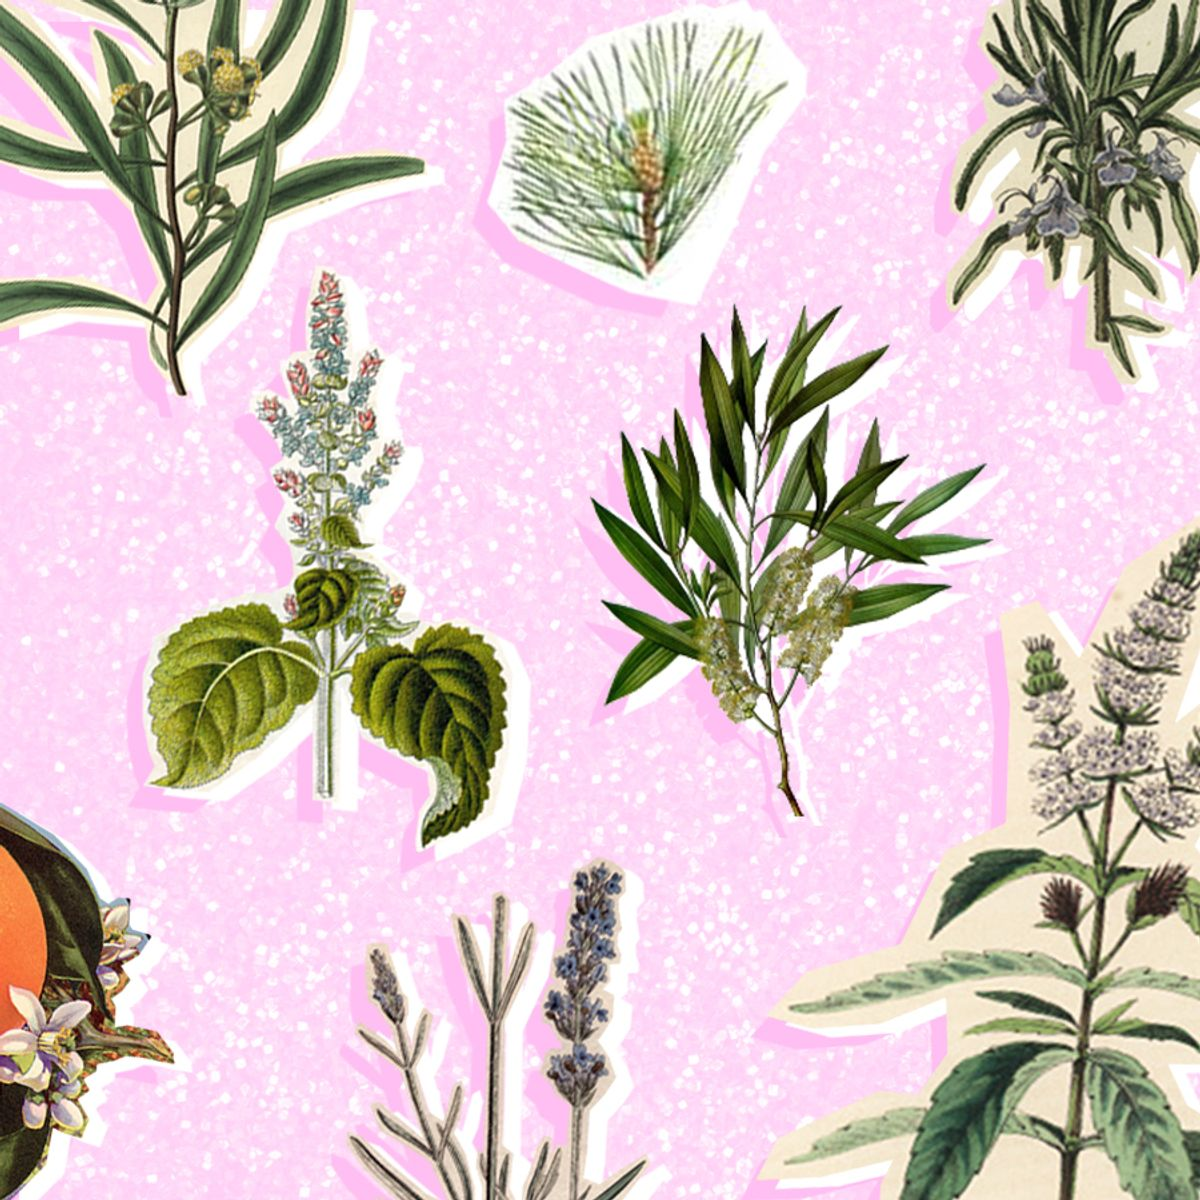 The 10 Actually Essential Essential Oils